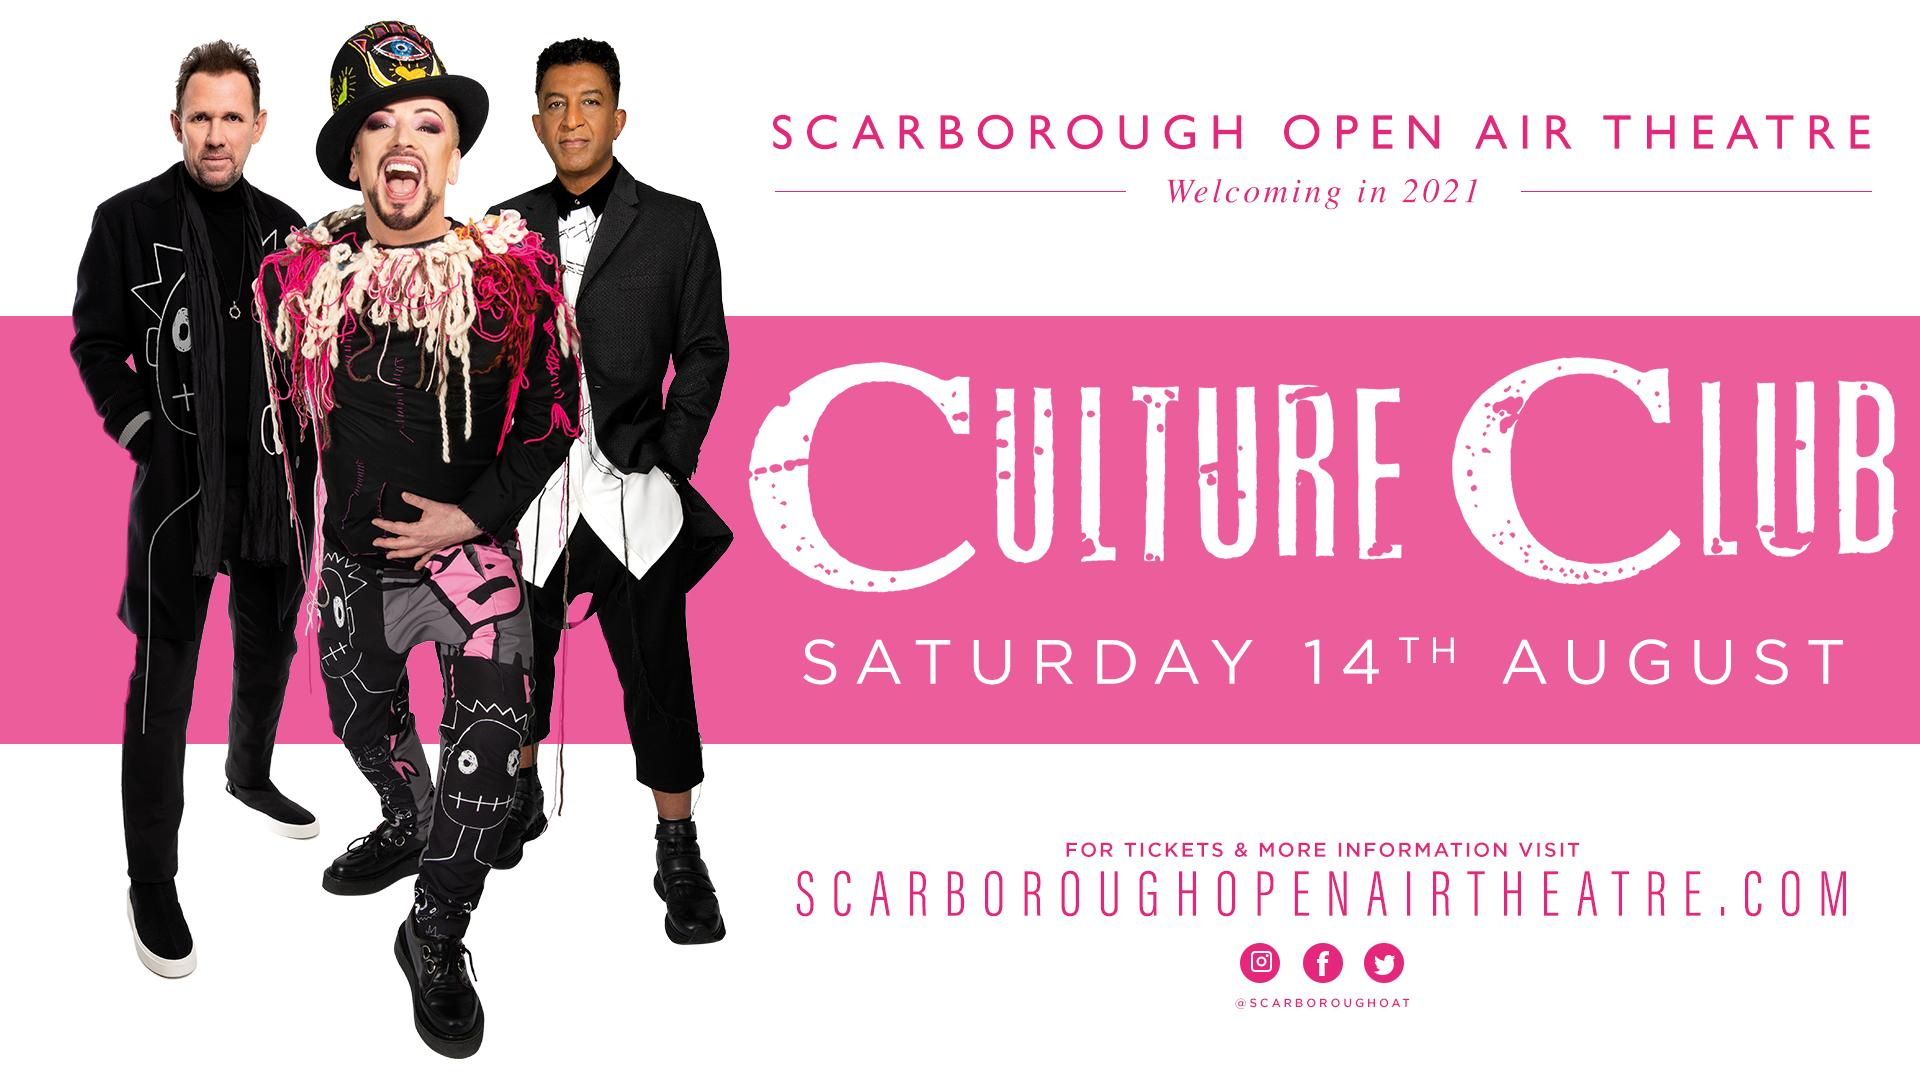 Promotional image for Boy George and Culture Club show at Scarborough OAT